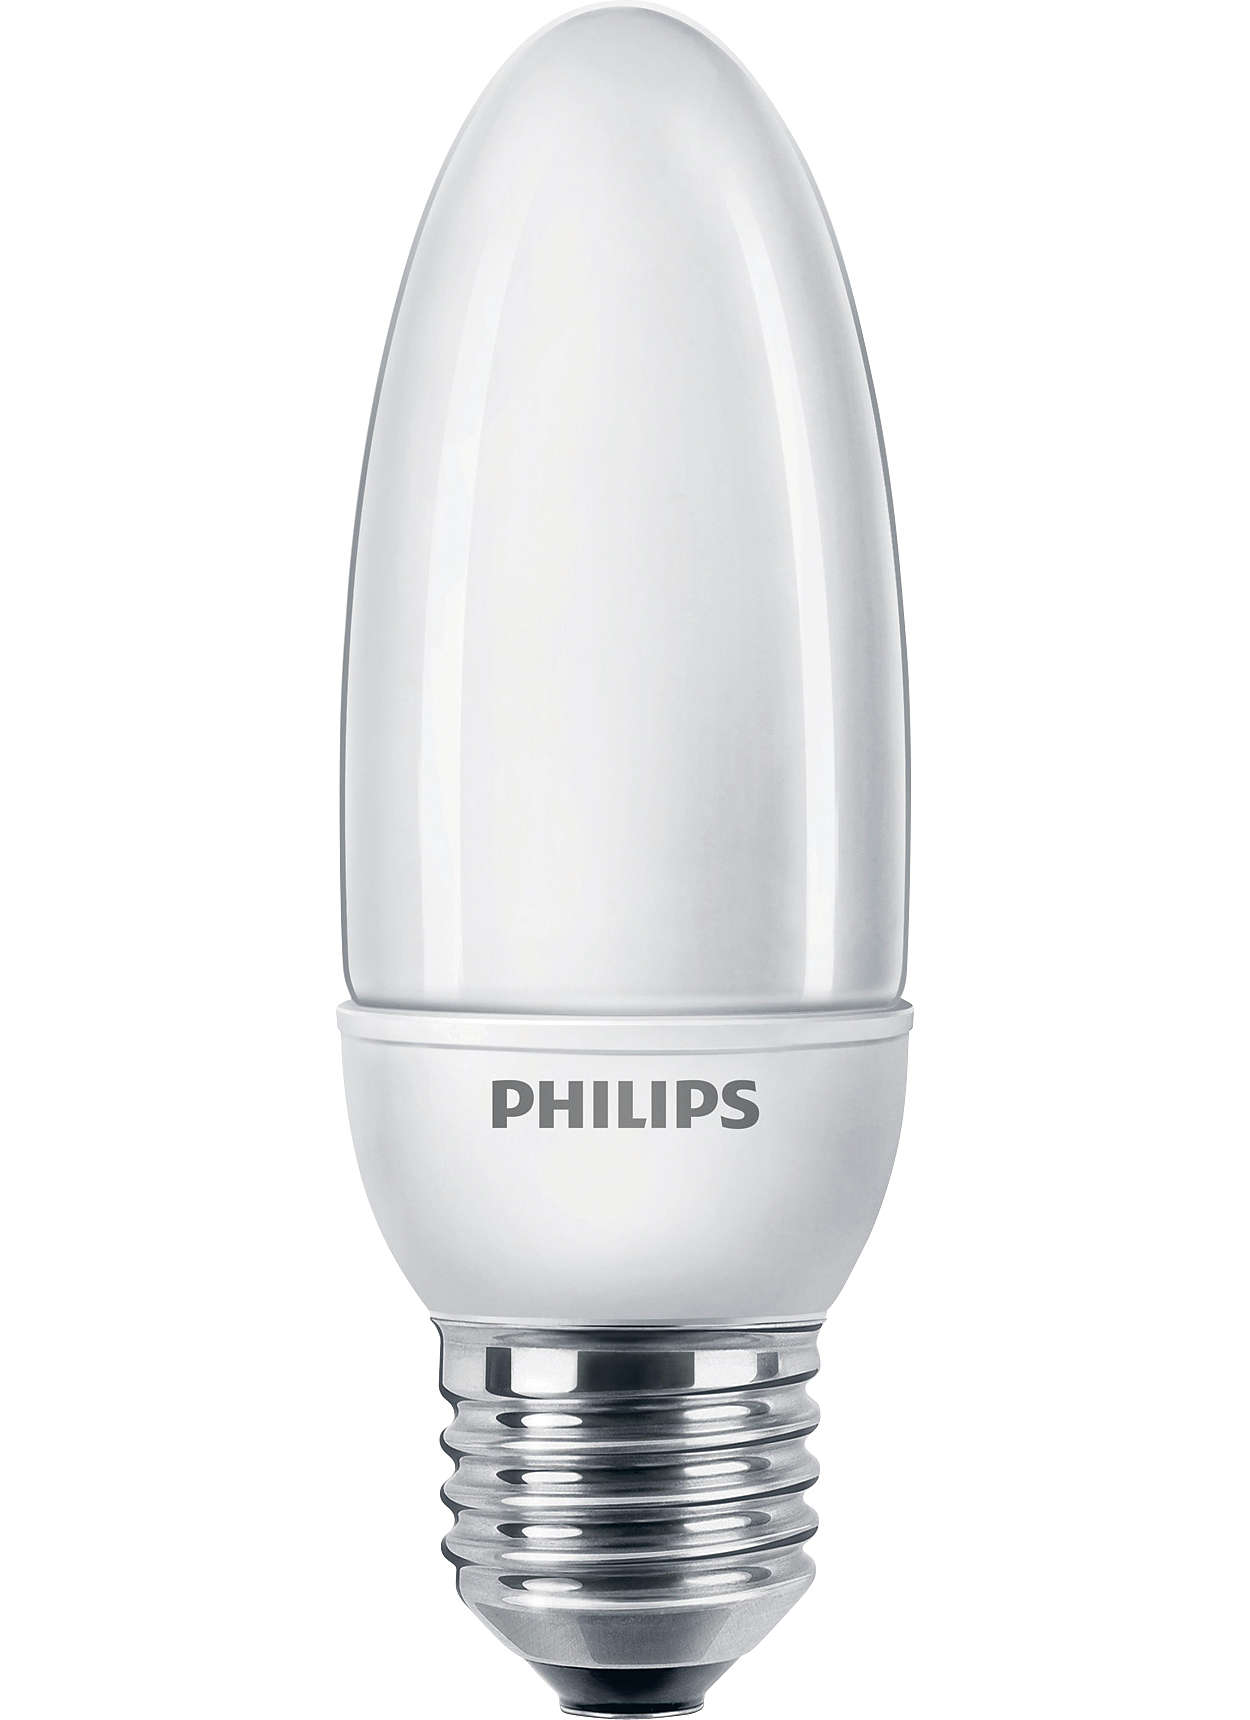 Perfect elegant energy saver specially designed for small decorative luminaries